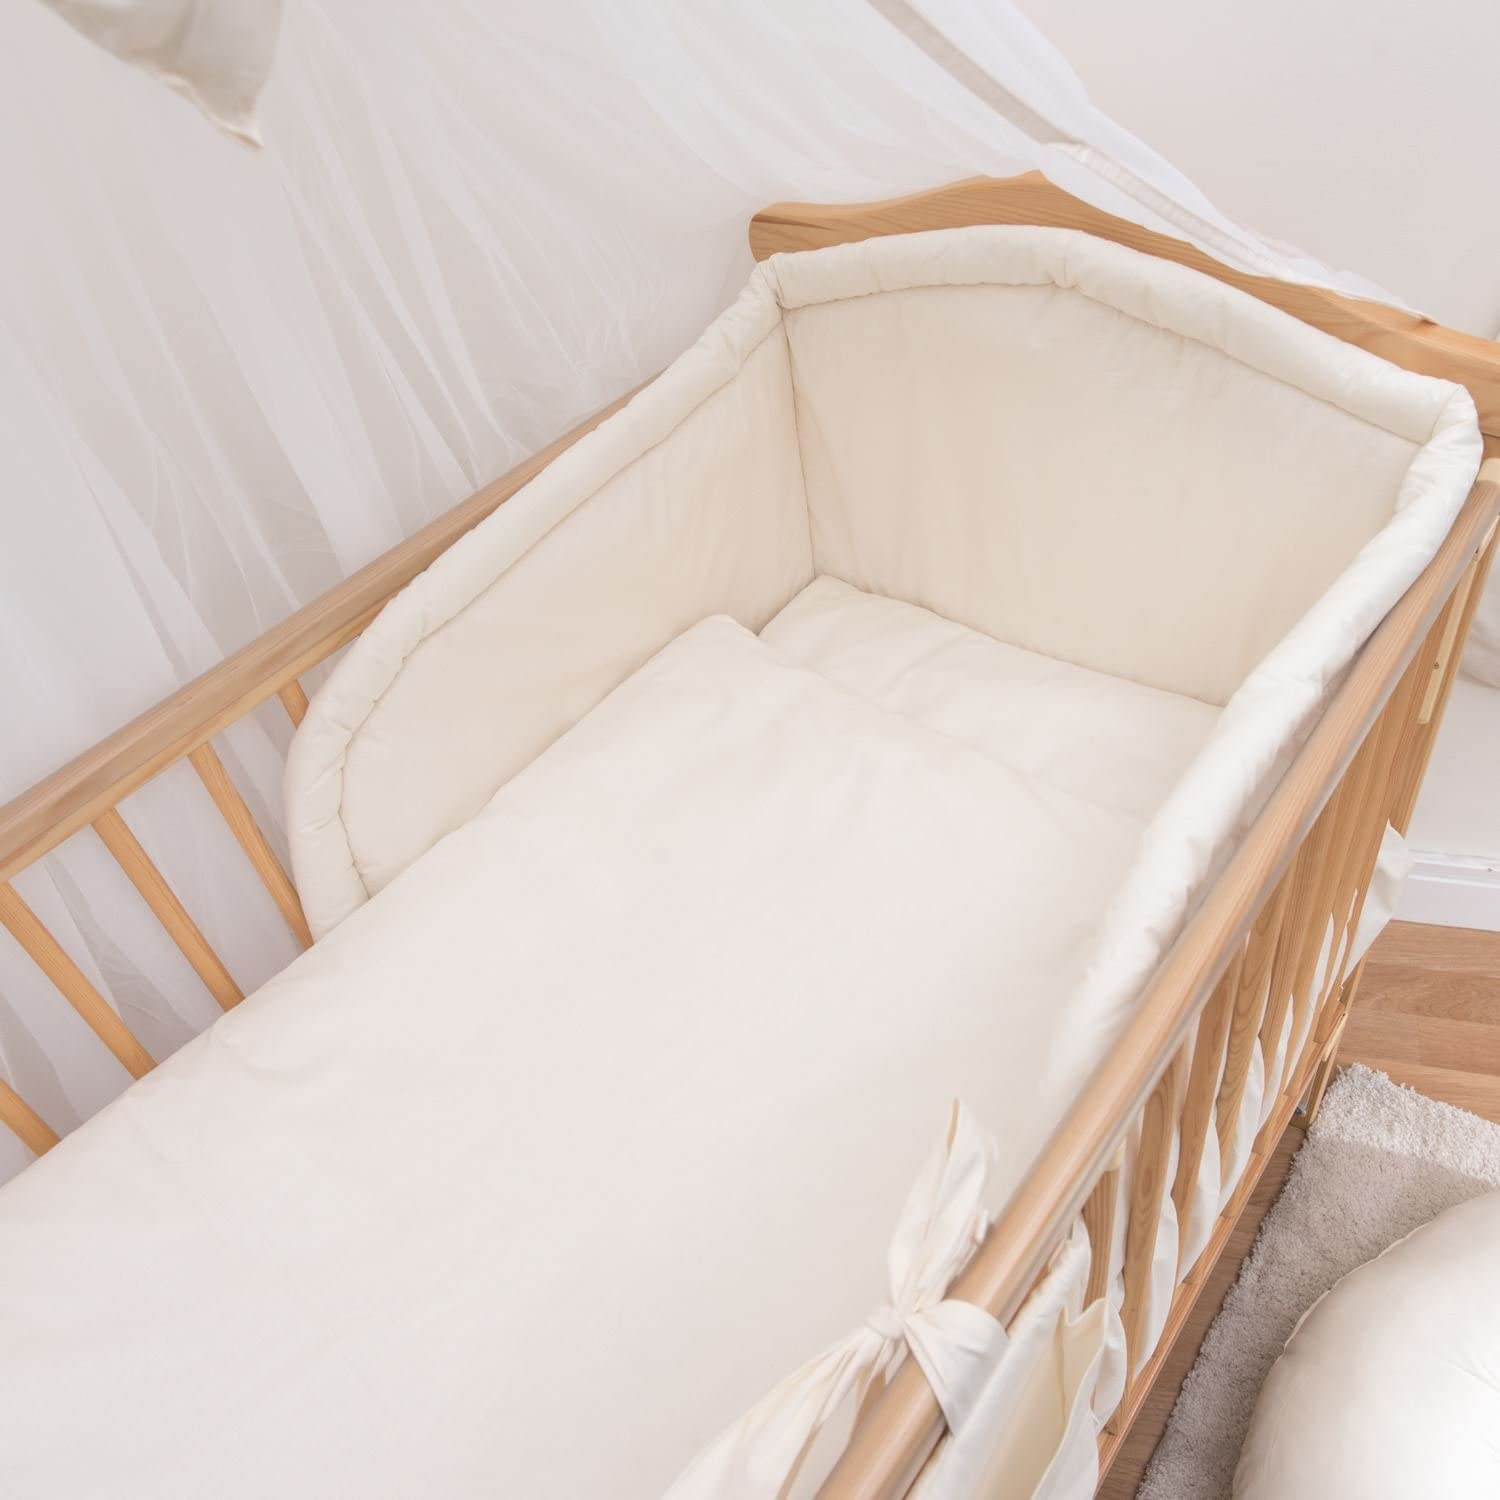 Cream 5 Piece Nursery Baby Bedding Set with Quilt and Padded Bumper fits 140x70 cm Cot Bed